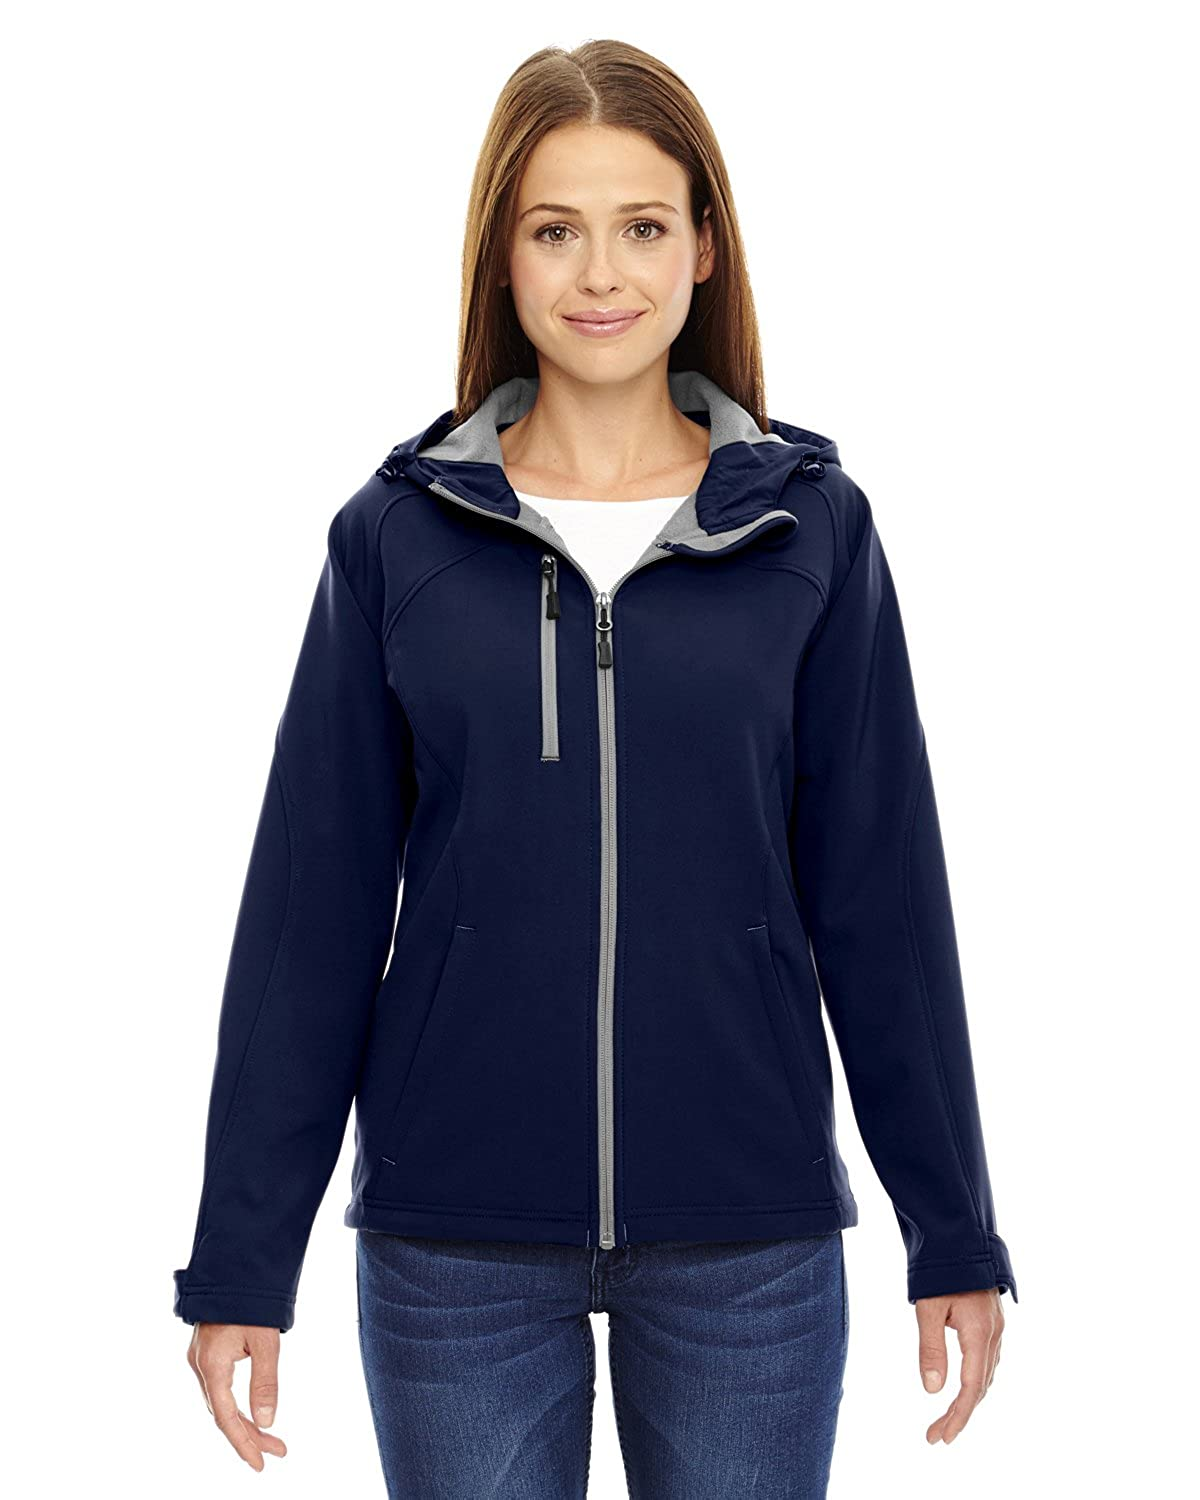 Ash City Women's Soft Shell Water Resistant Jacket Ash City - North End M10174